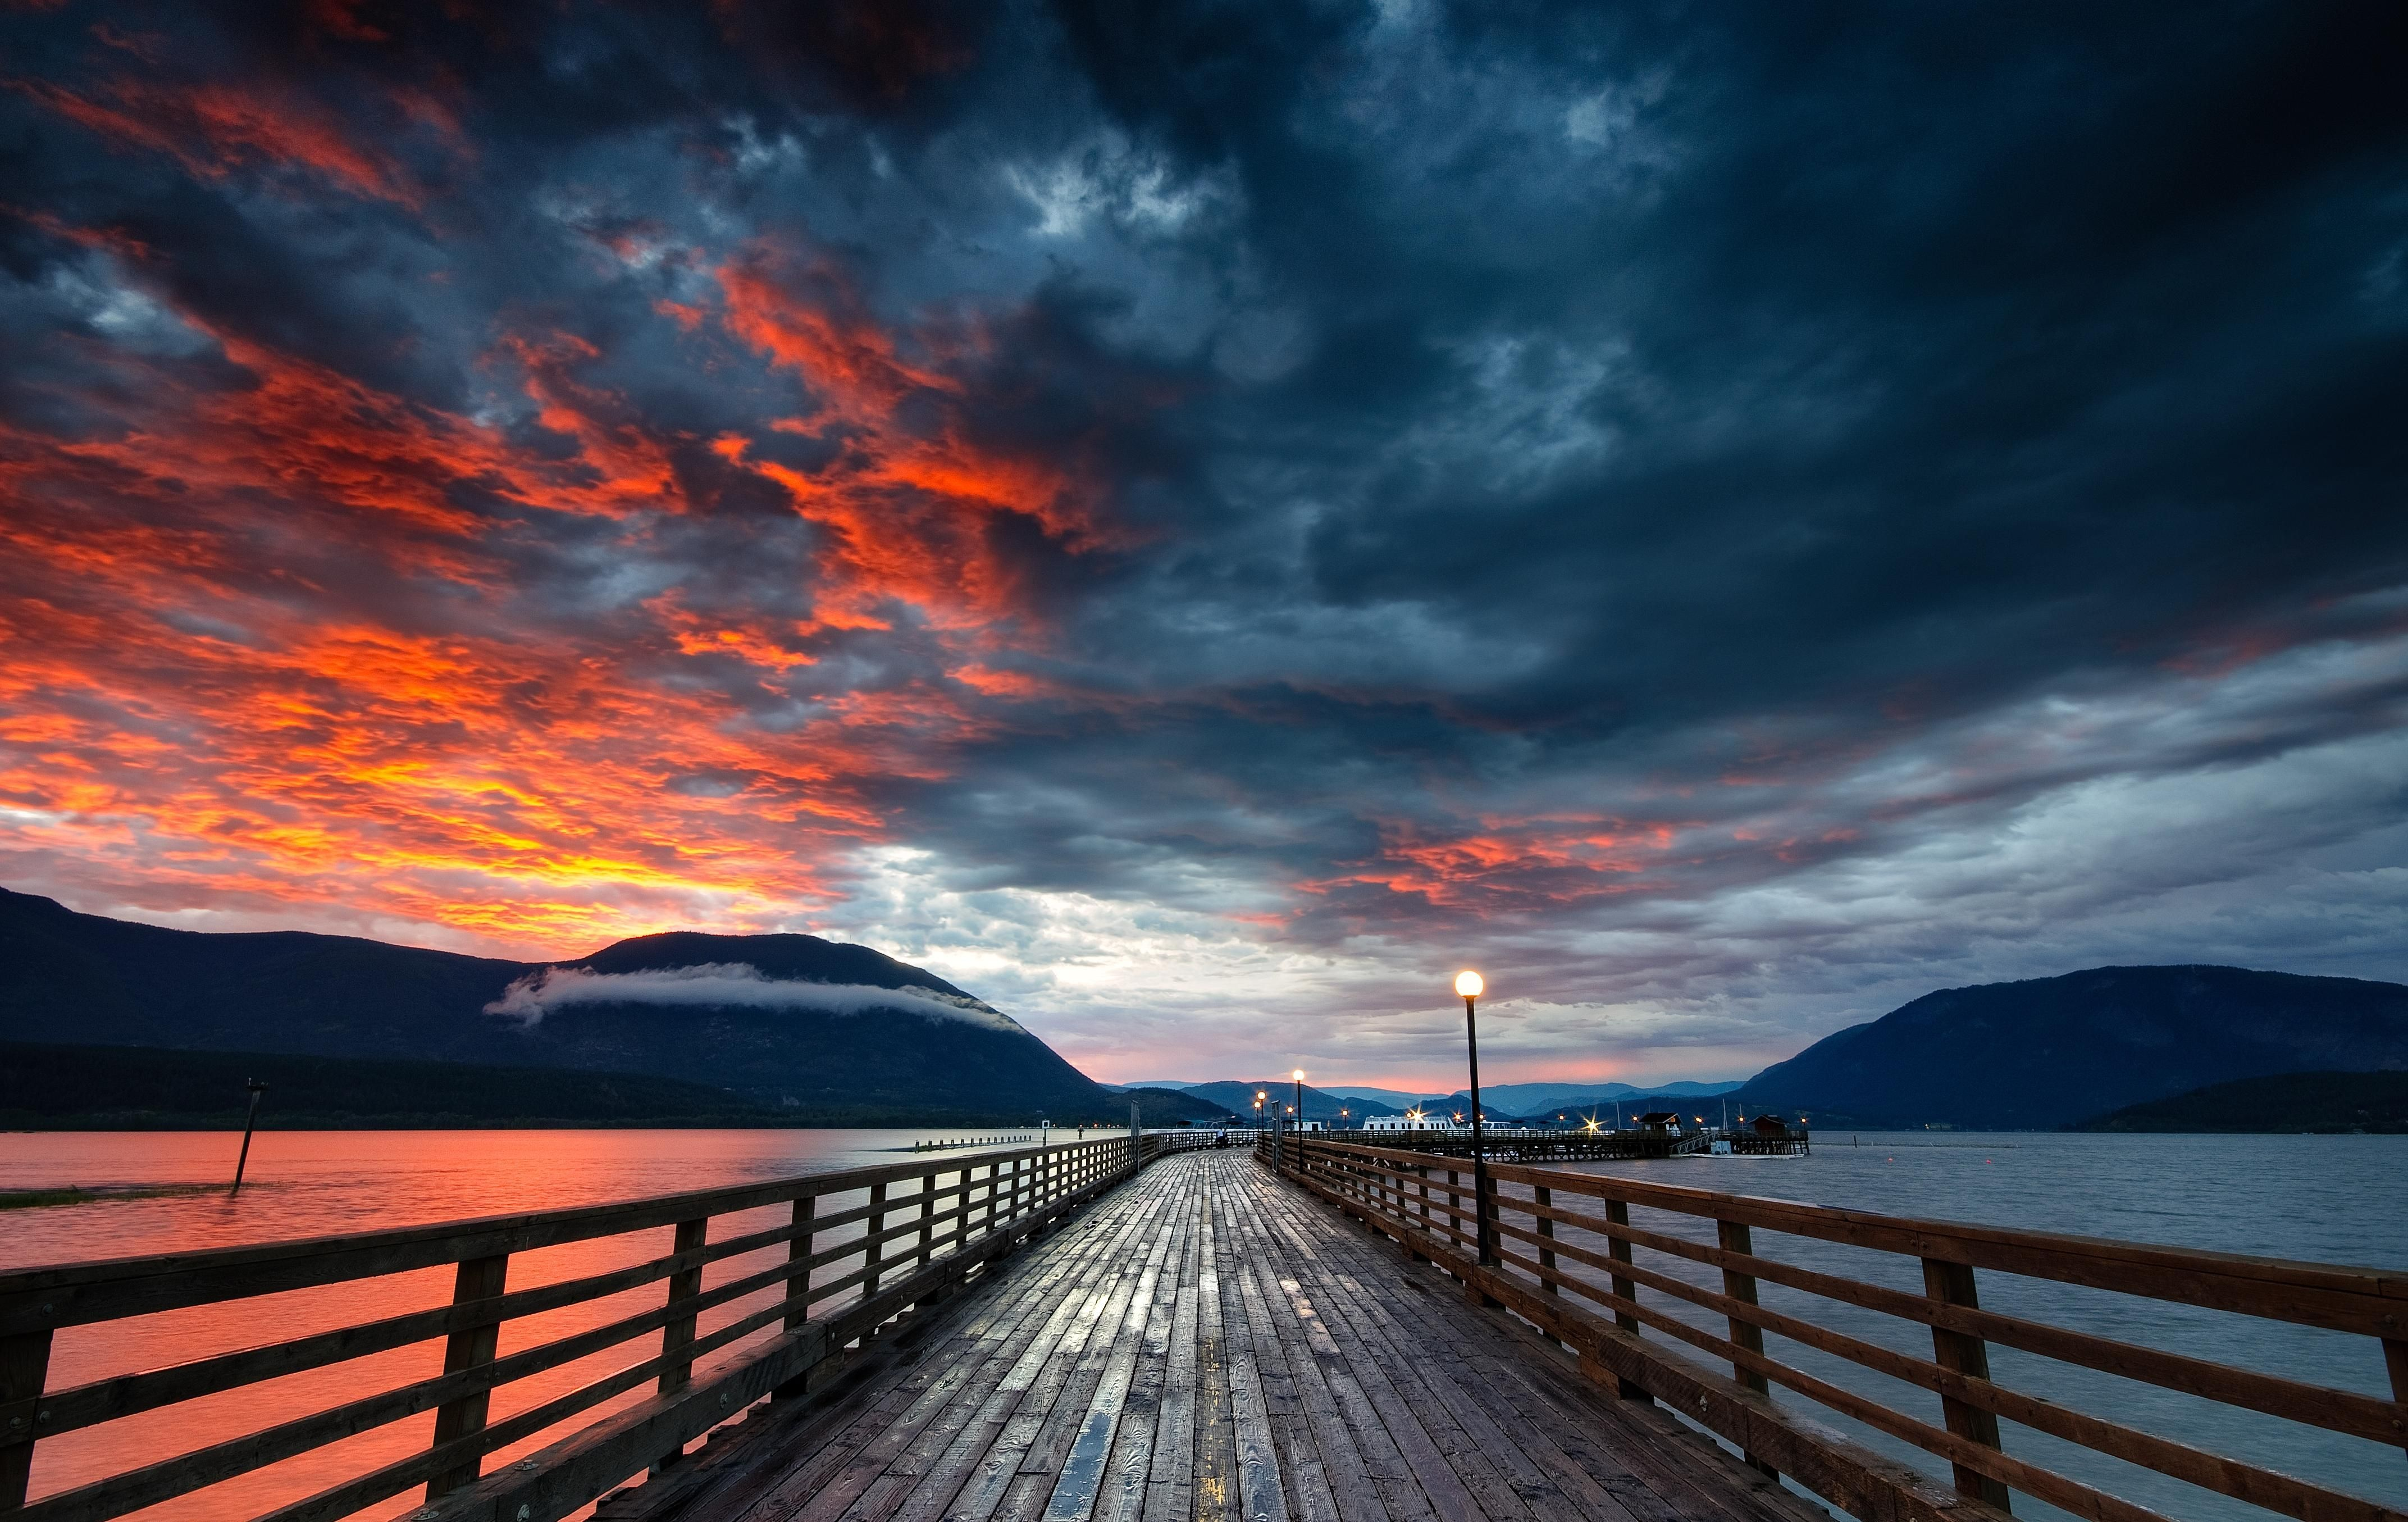 Salmon Arm, BC, For Sale or For Rent, Snap Up Real Estate